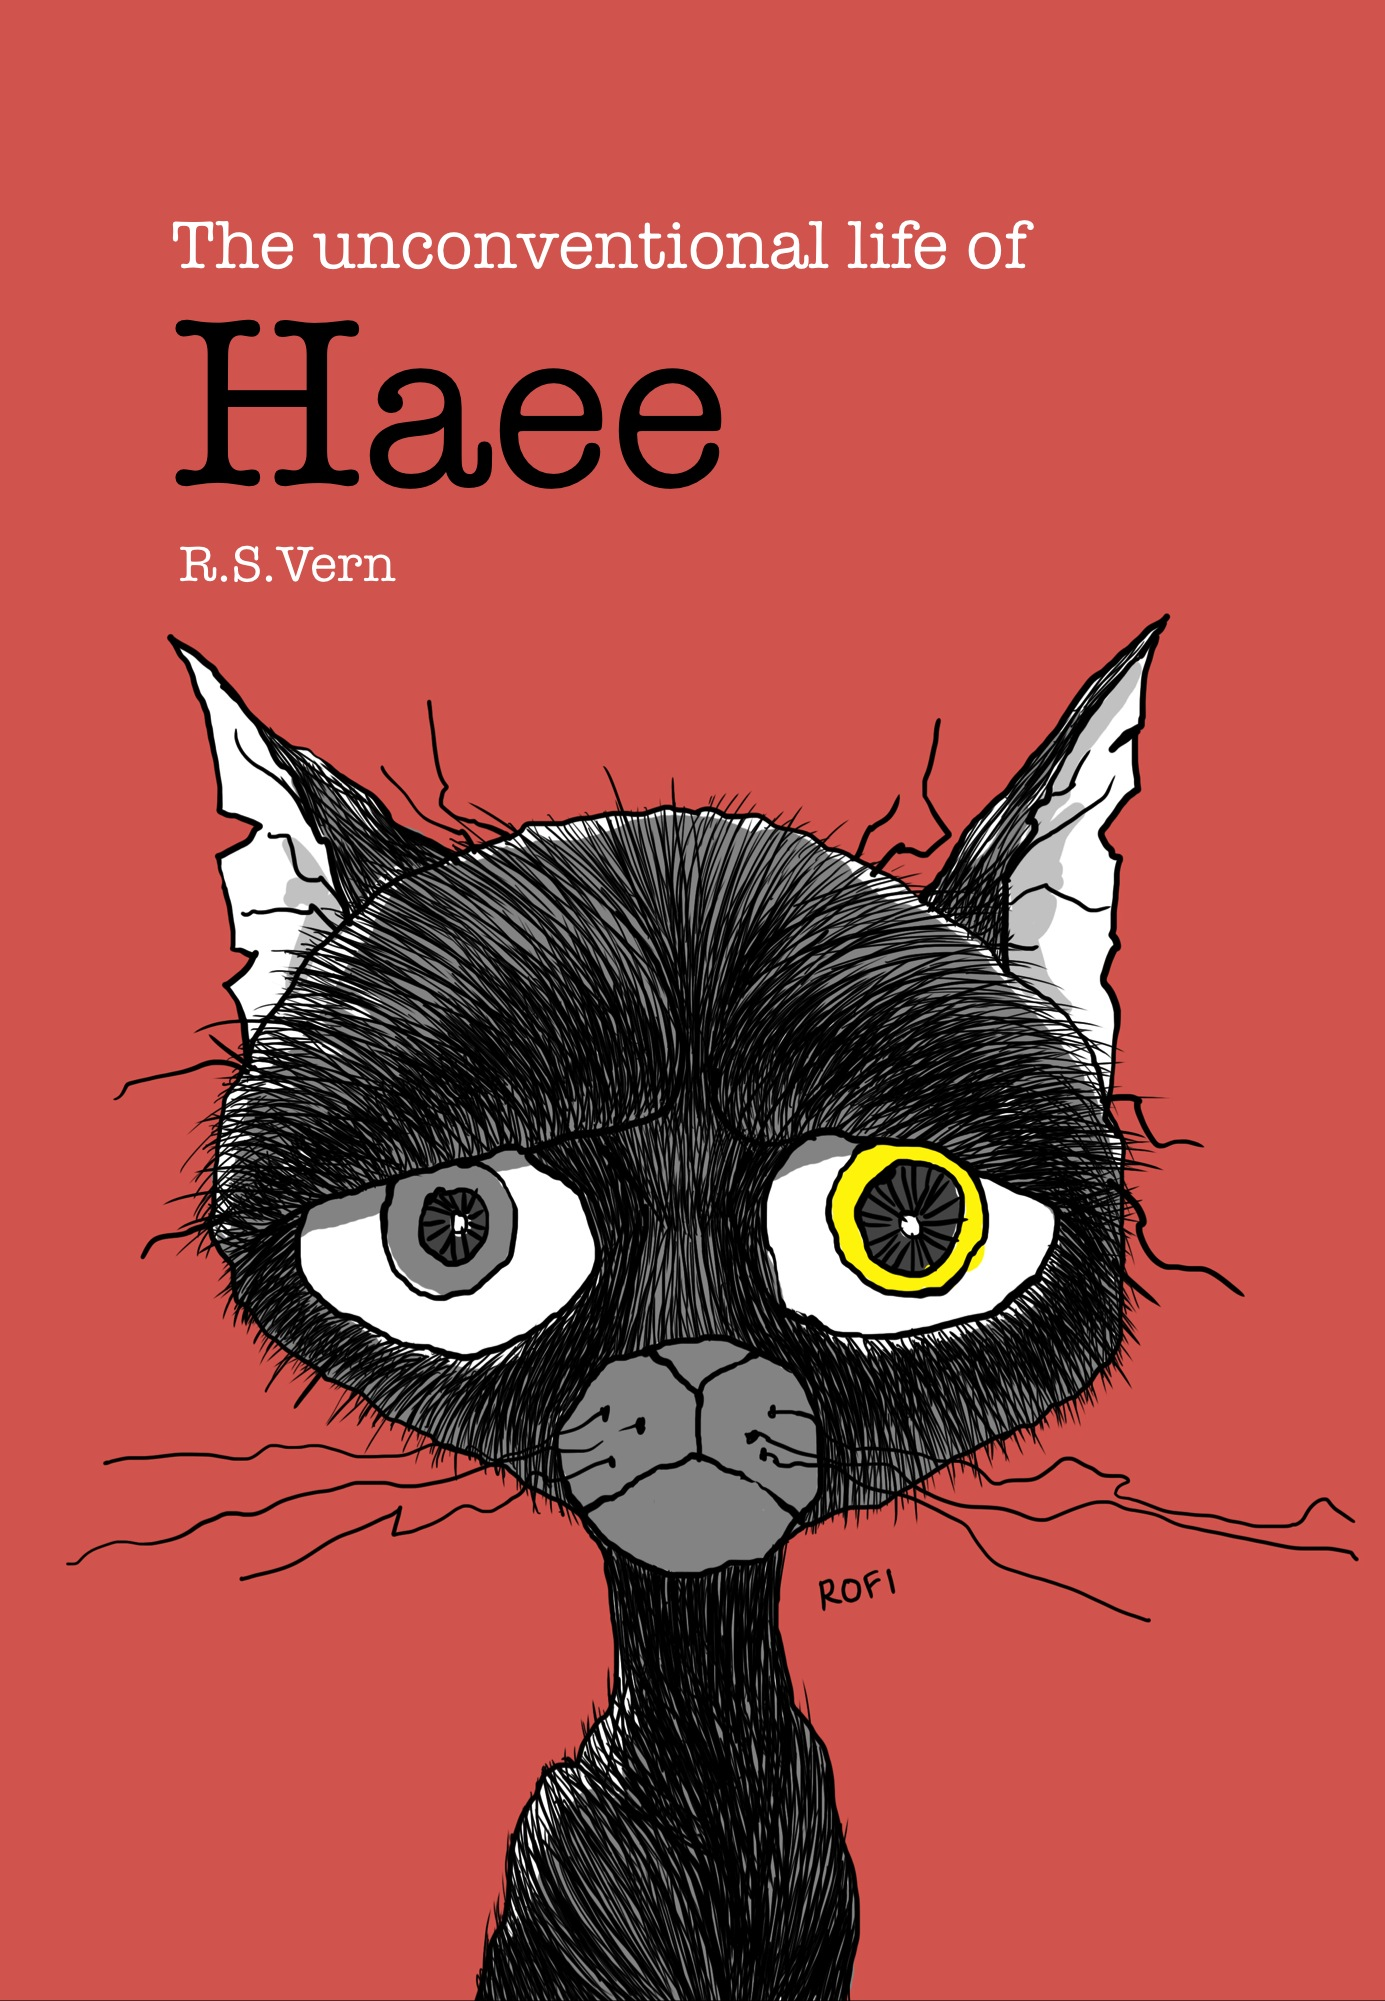 The Unconventional Life of Haee By: R.S. Vern